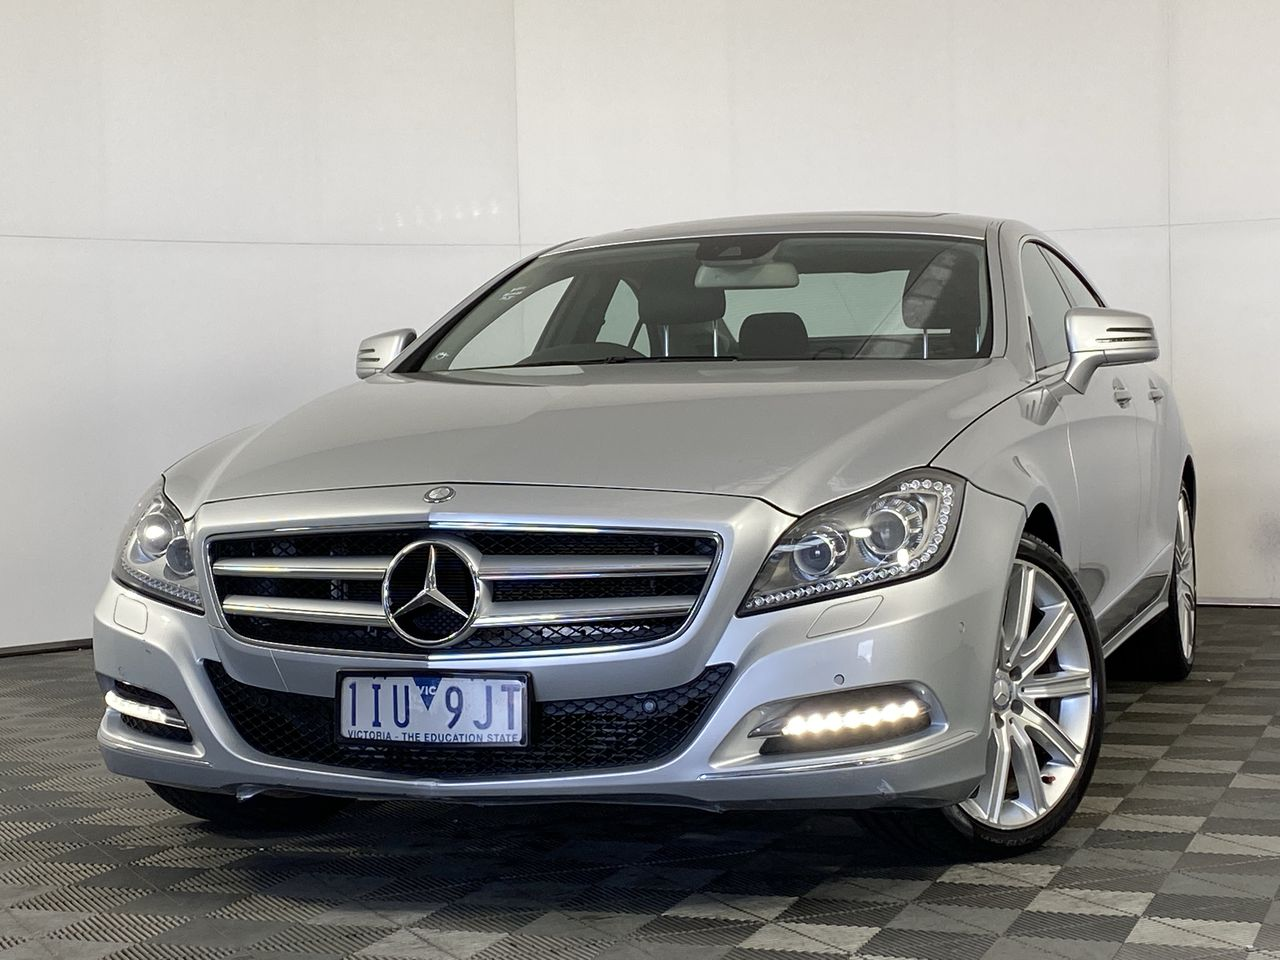 2013 Mercedes Benz CLS-Class CLS 250CDI C218 Turbo Diesel Automatic Coupe